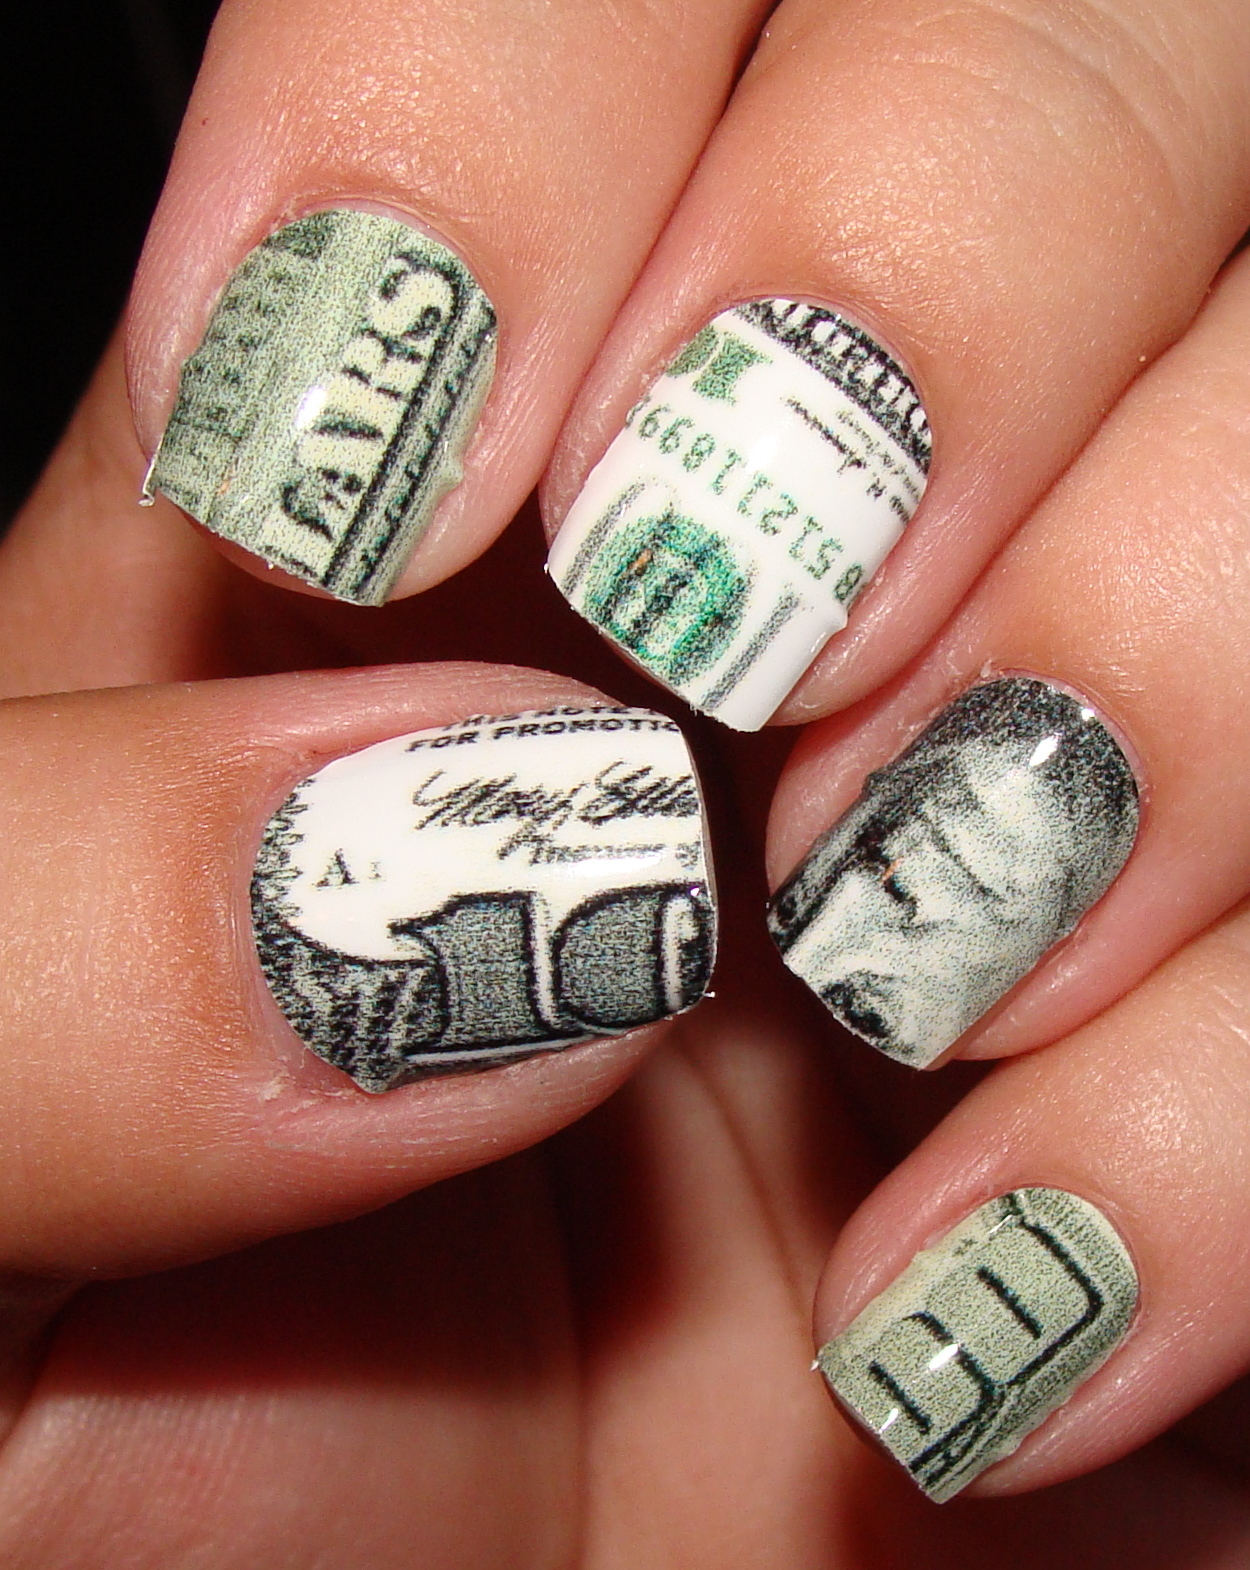 Money nail designs pictures funky nails money nail art money nail designs pictures best dollar nail art designs styles at life prinsesfo Images